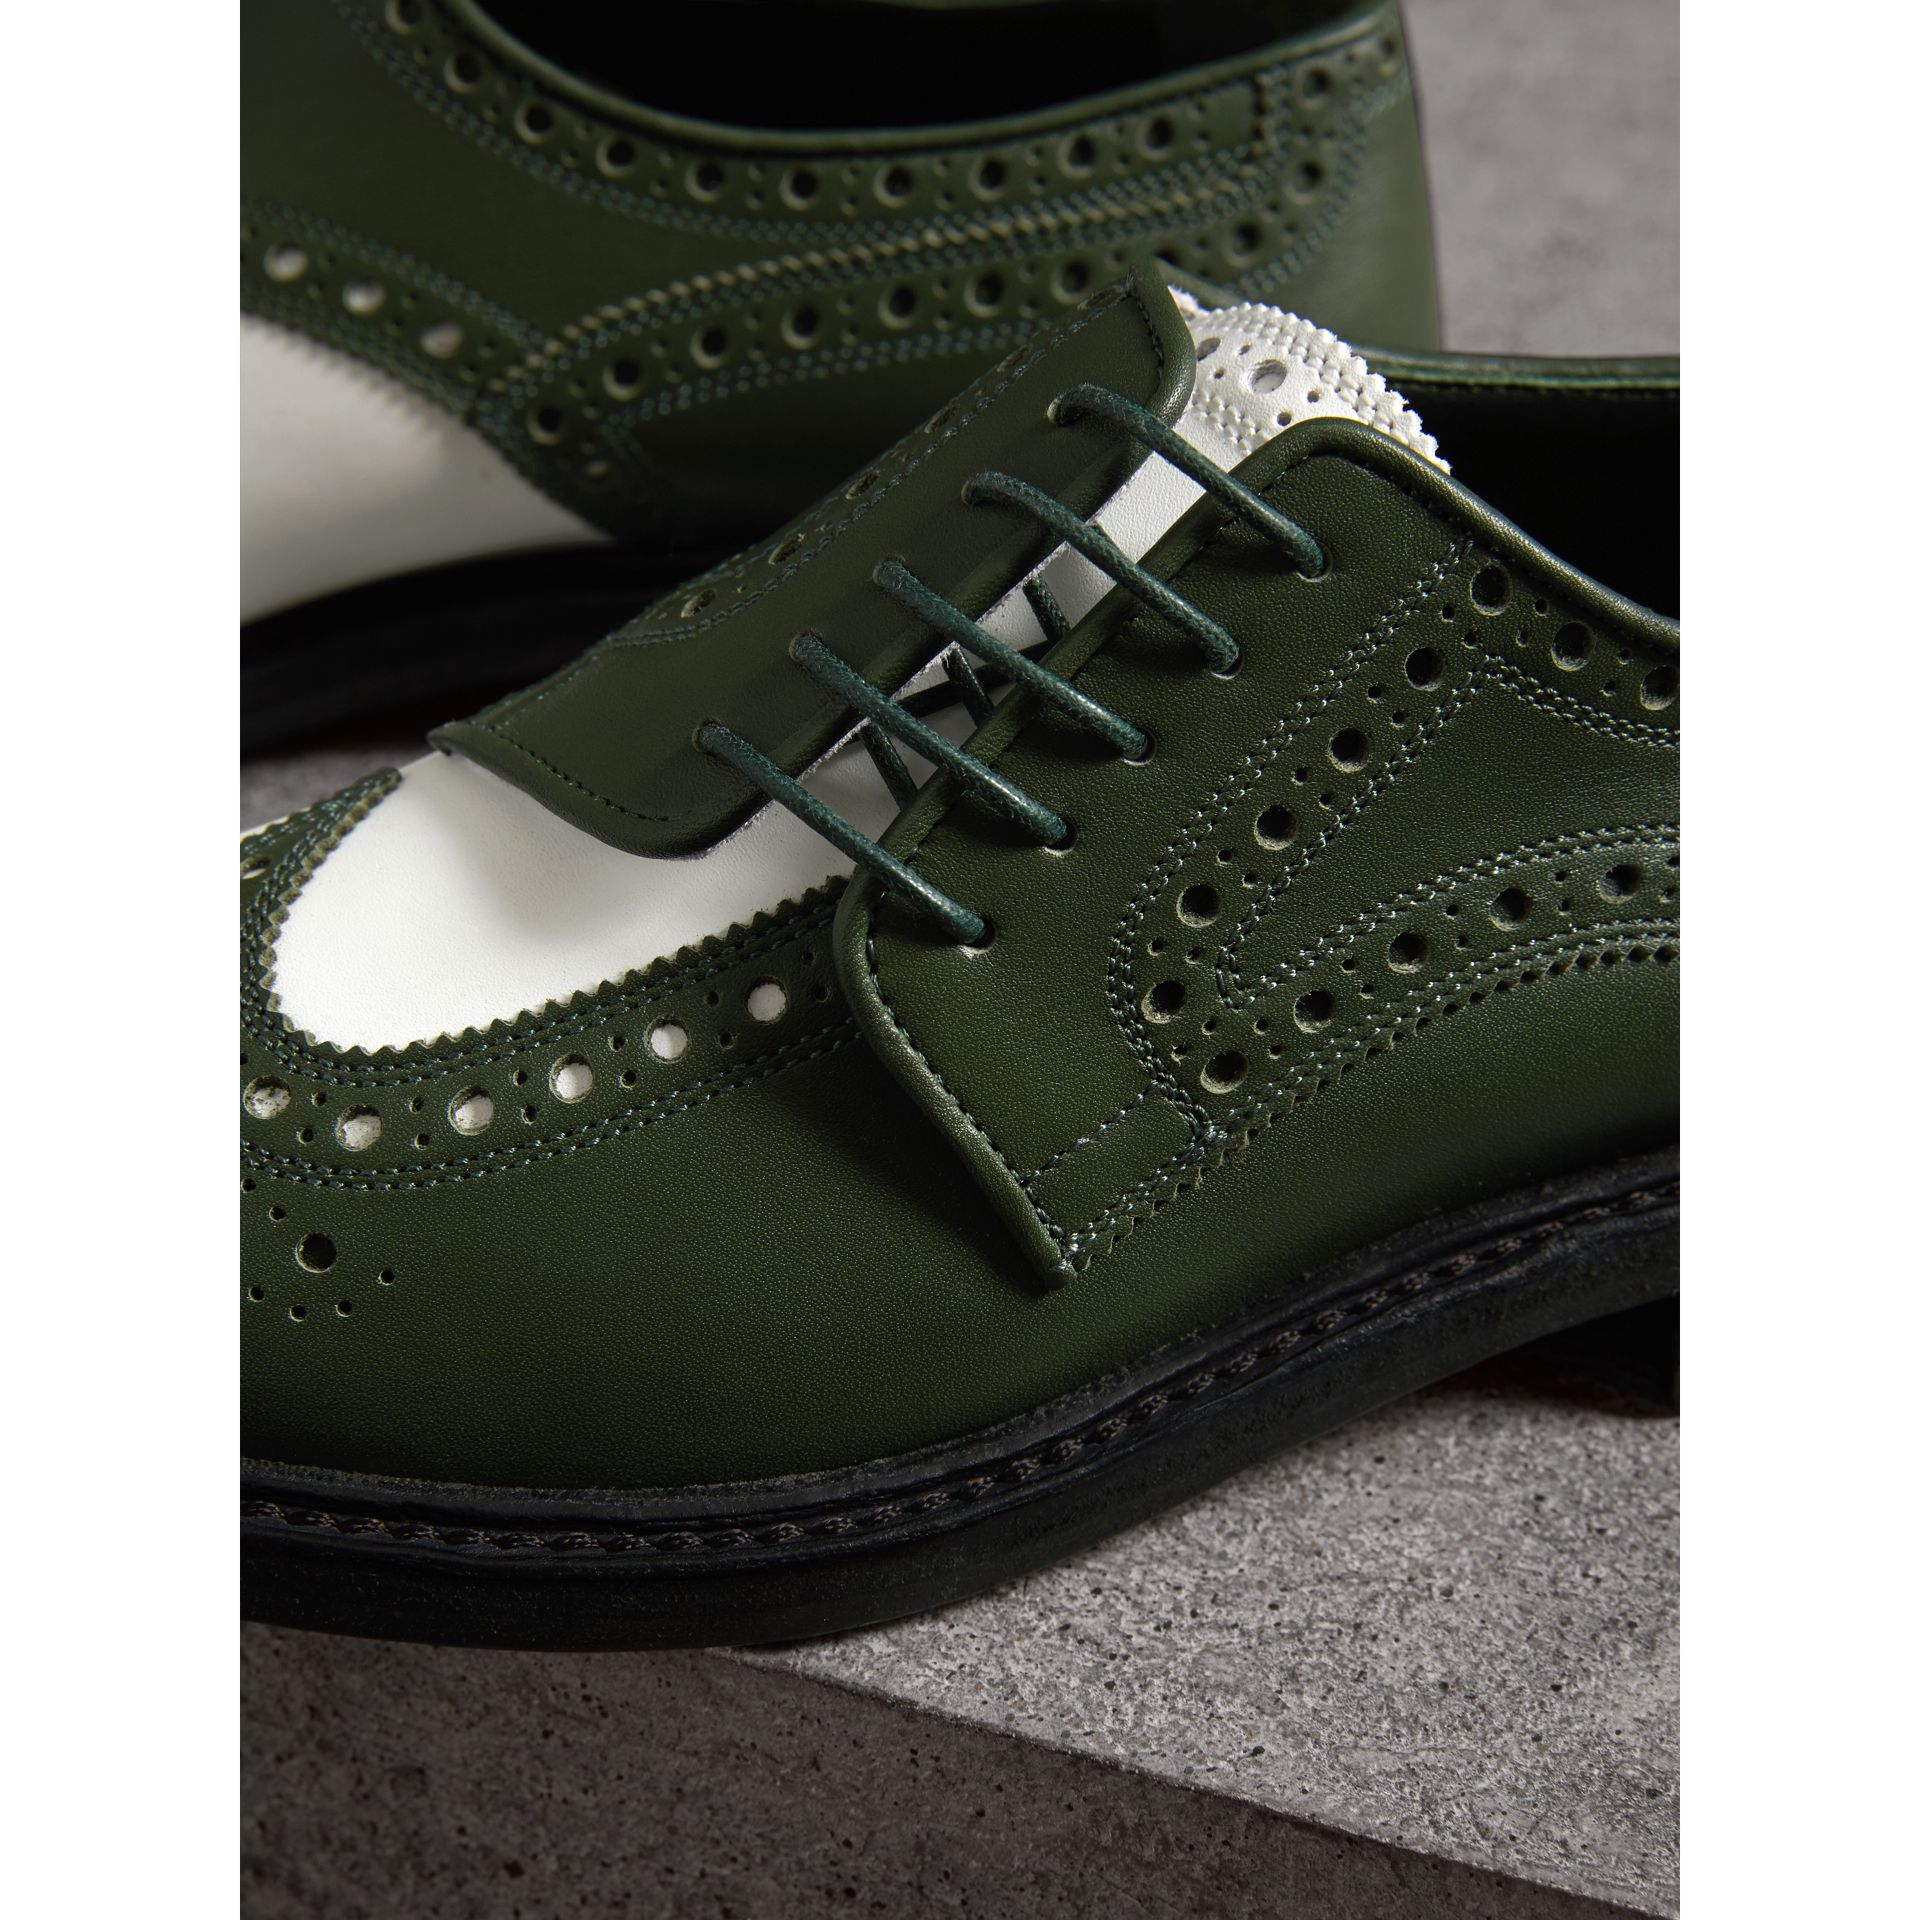 Two-tone Asymmetric Closure Leather Brogues in Dark Green - Women | Burberry Singapore - gallery image 1